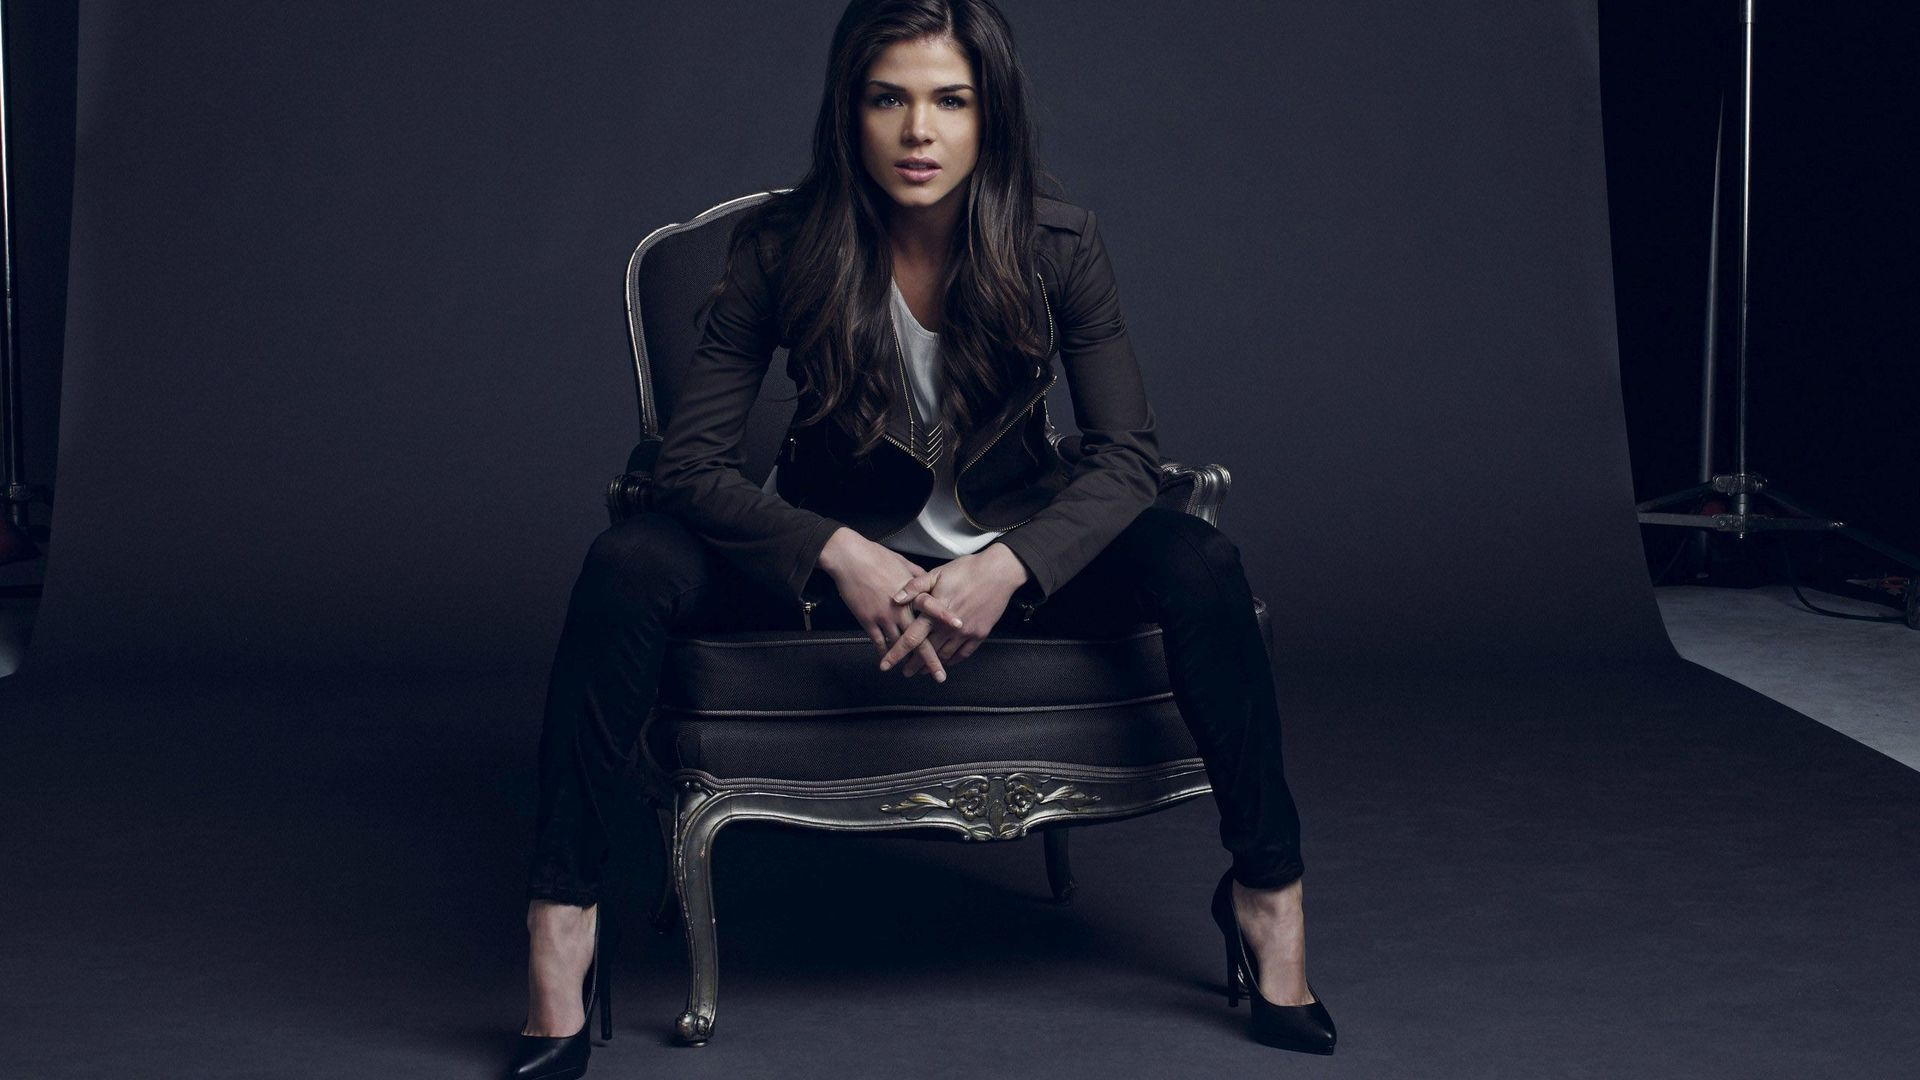 Marie avgeropoulos wallpaper